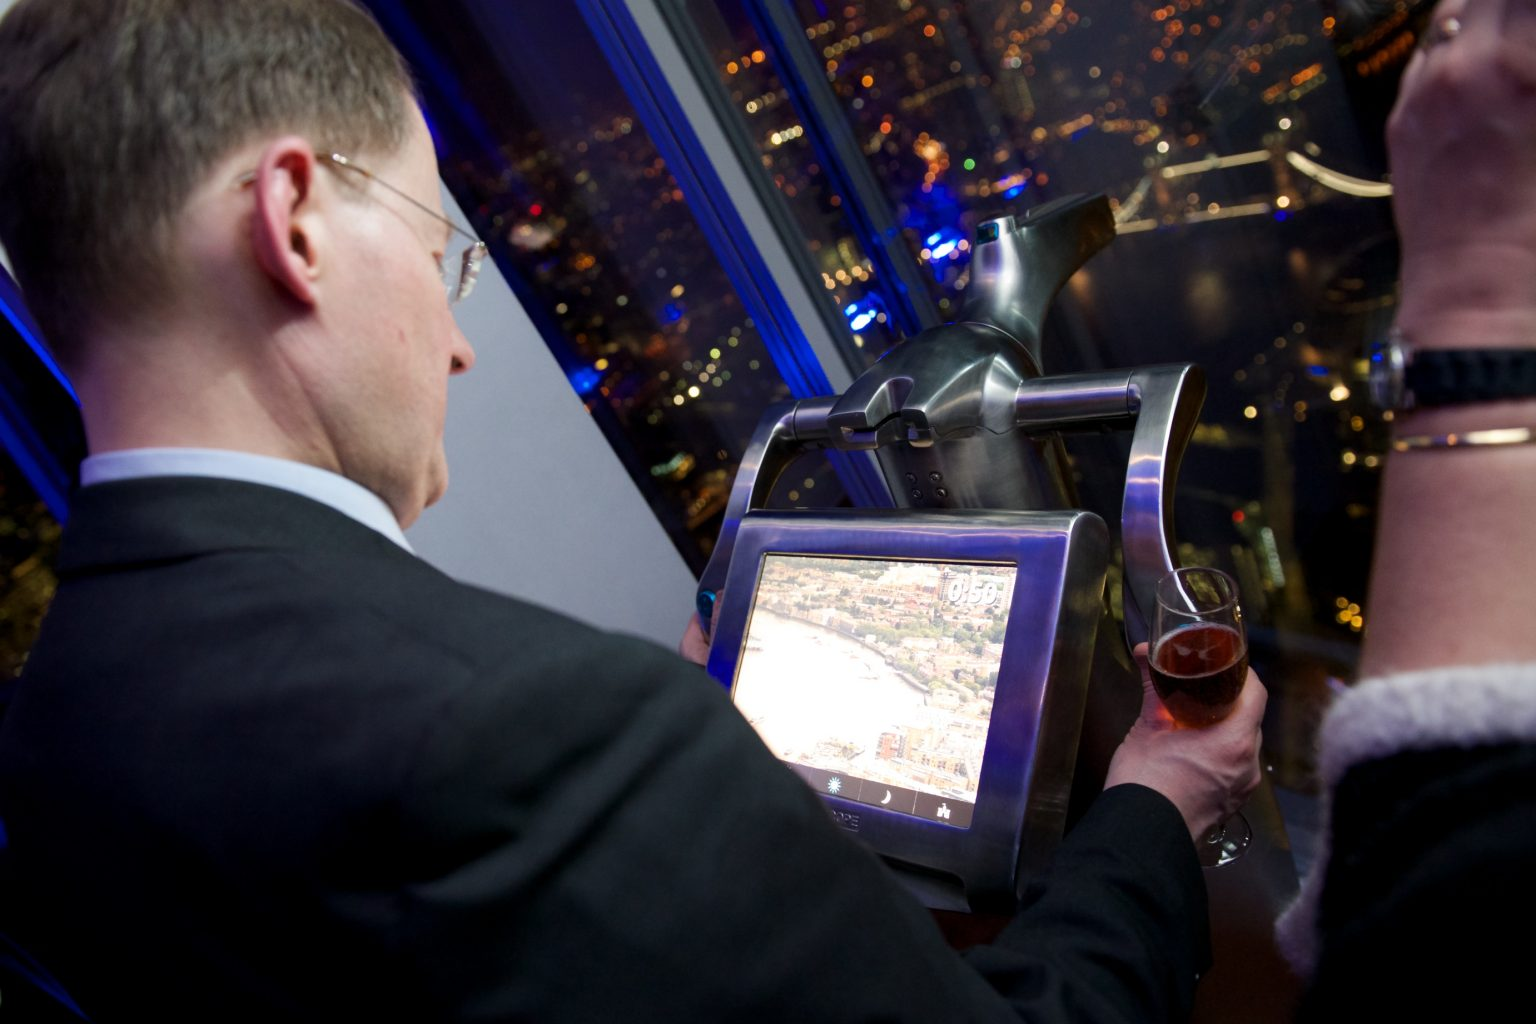 ICON PICTURE 1 - EMEA Evening Reception At The Shard